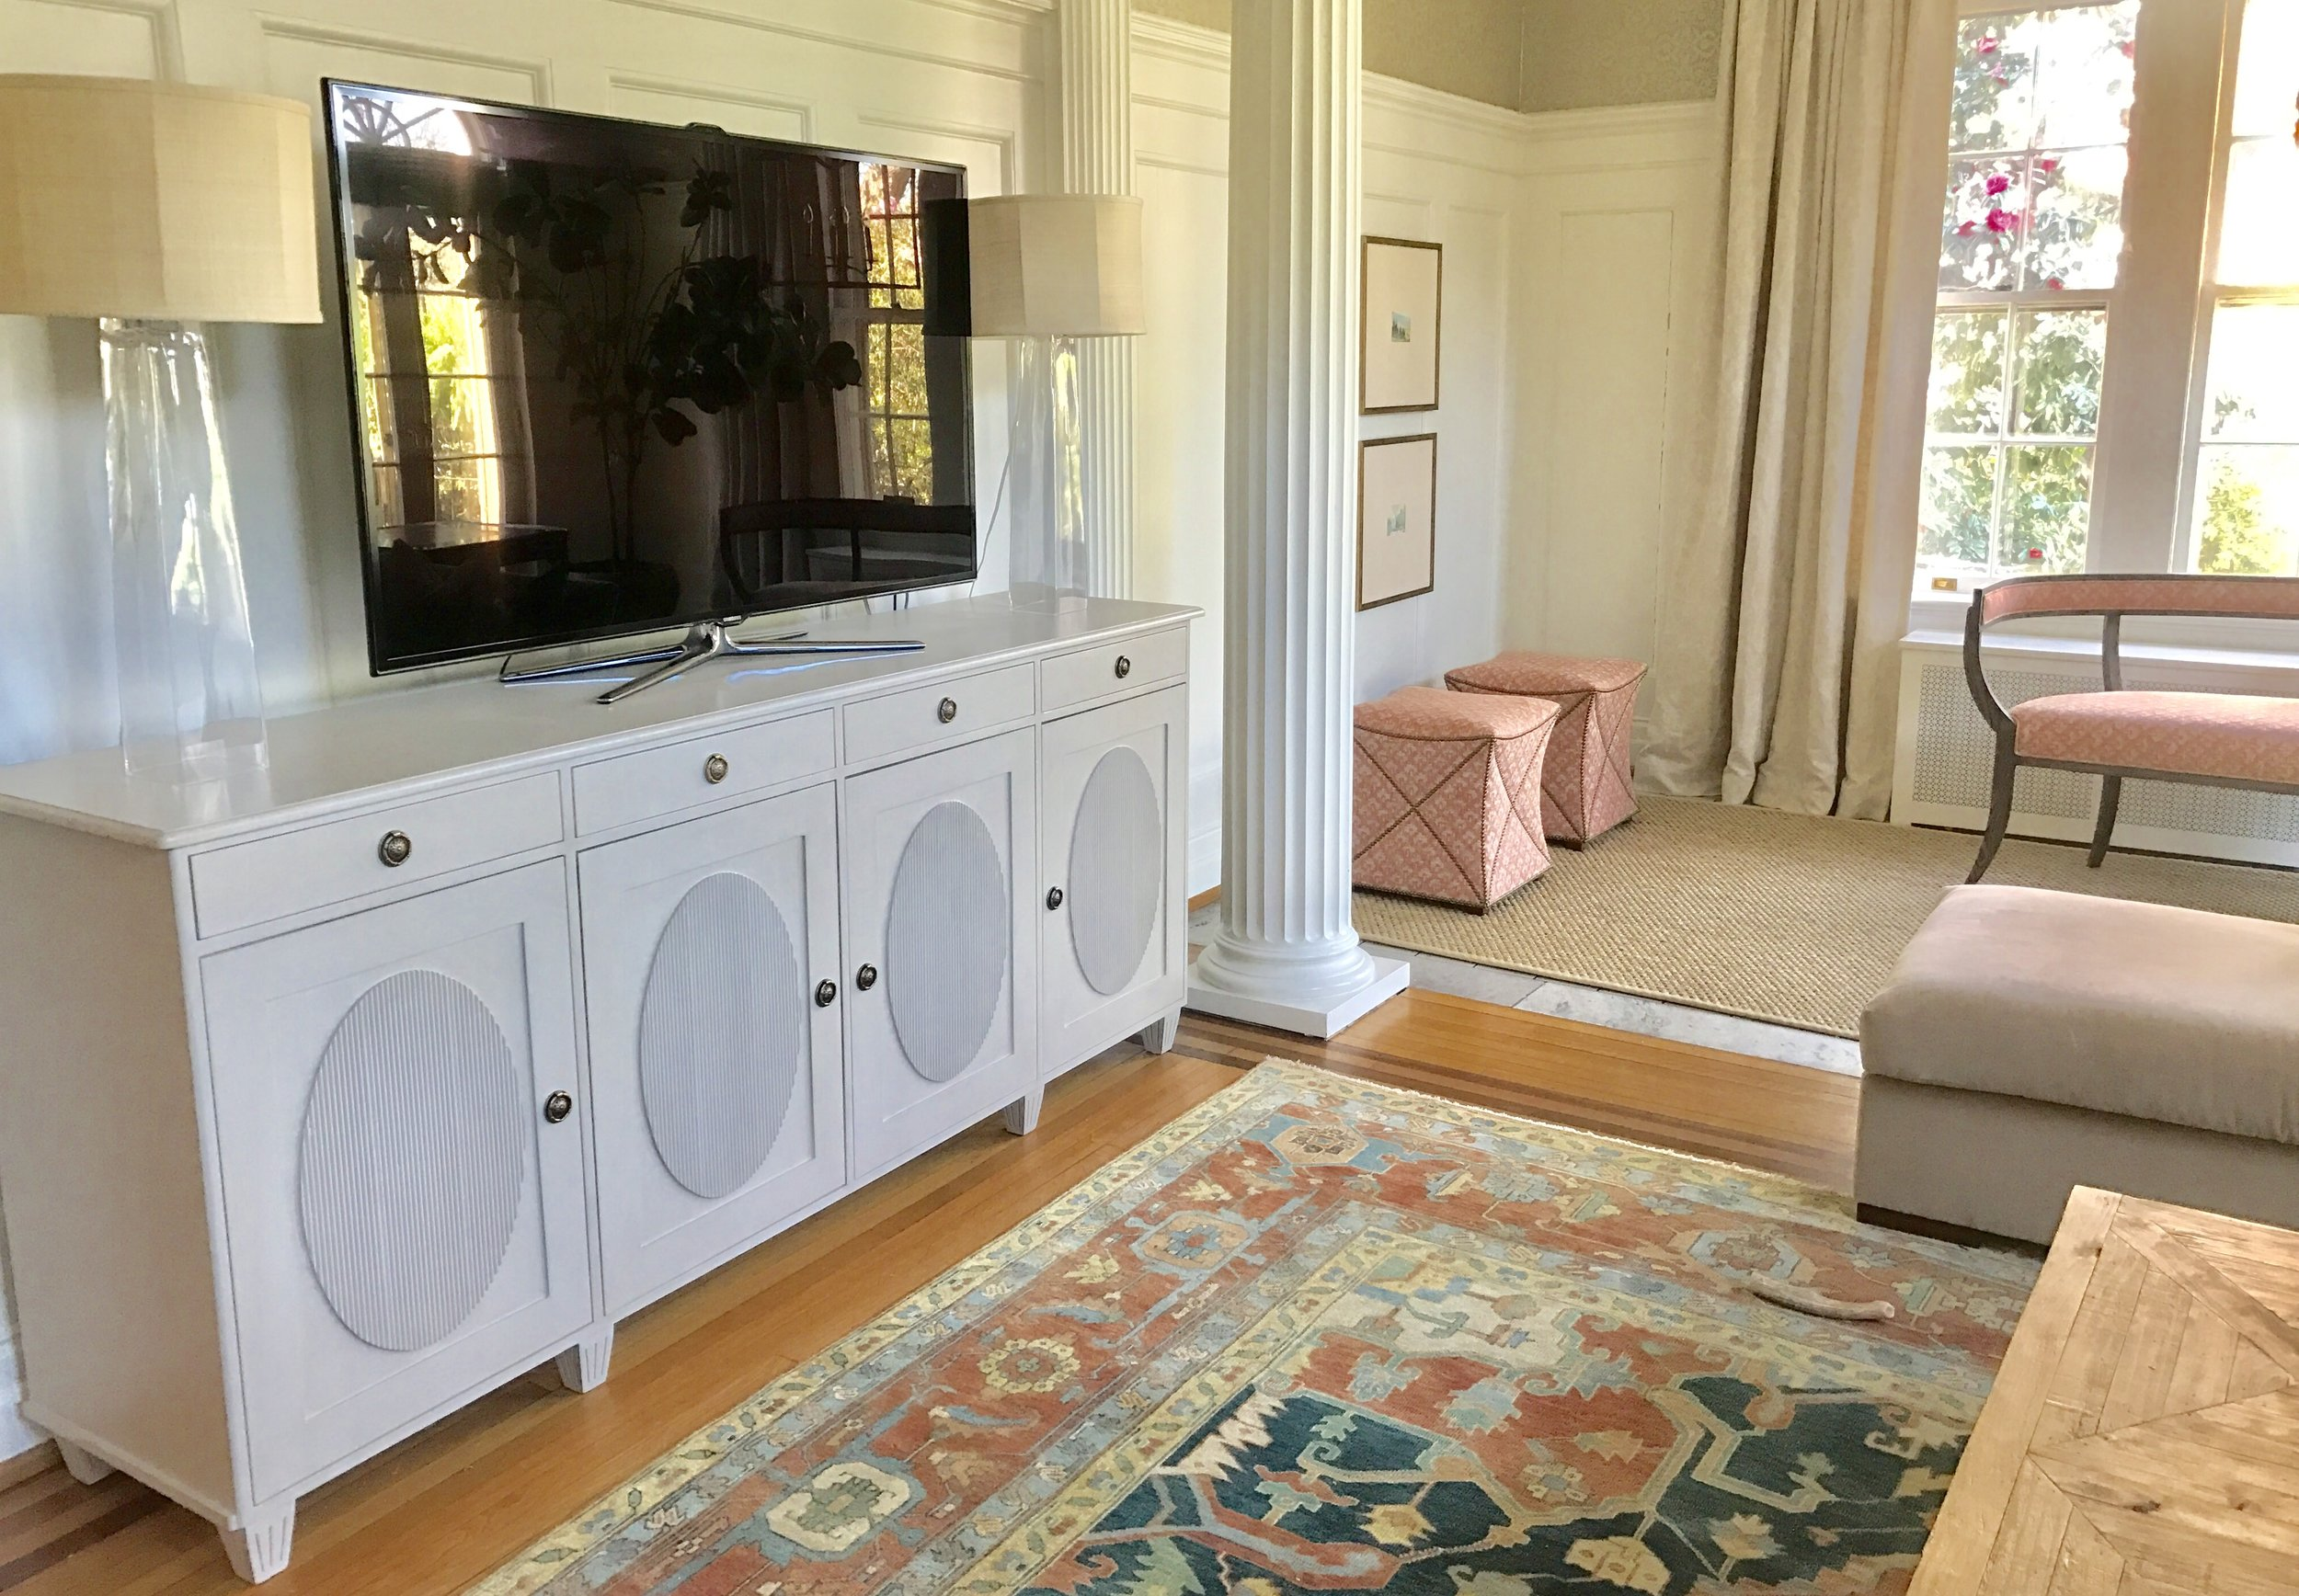 """For this client's home, which will be featured in the 2017 Virginia Garden Tour, Williams skillfully blended newer pieces with antiques and traditional architectural elements.  """"Because I use mostly new furnishings, Tritter Feefer's finishes and styles don't scream 'new' - very important to me.""""    On working with Tritter Feefer, Williams says, """"I love Tritter Feefer! It's an easy sell to my clients not only because of their updated traditional and transitional styles, but also Tritter Feefer caters to the perfect look for my coastal living aesthetic. Most importantly, Tritter Feefer's quality is top notch. You get what you pay for and I highly value knowing I am providing the best to my clients.""""    Williams chose our Helga buffet to step in as an elegant media console that also provides valuable storage in this family room."""